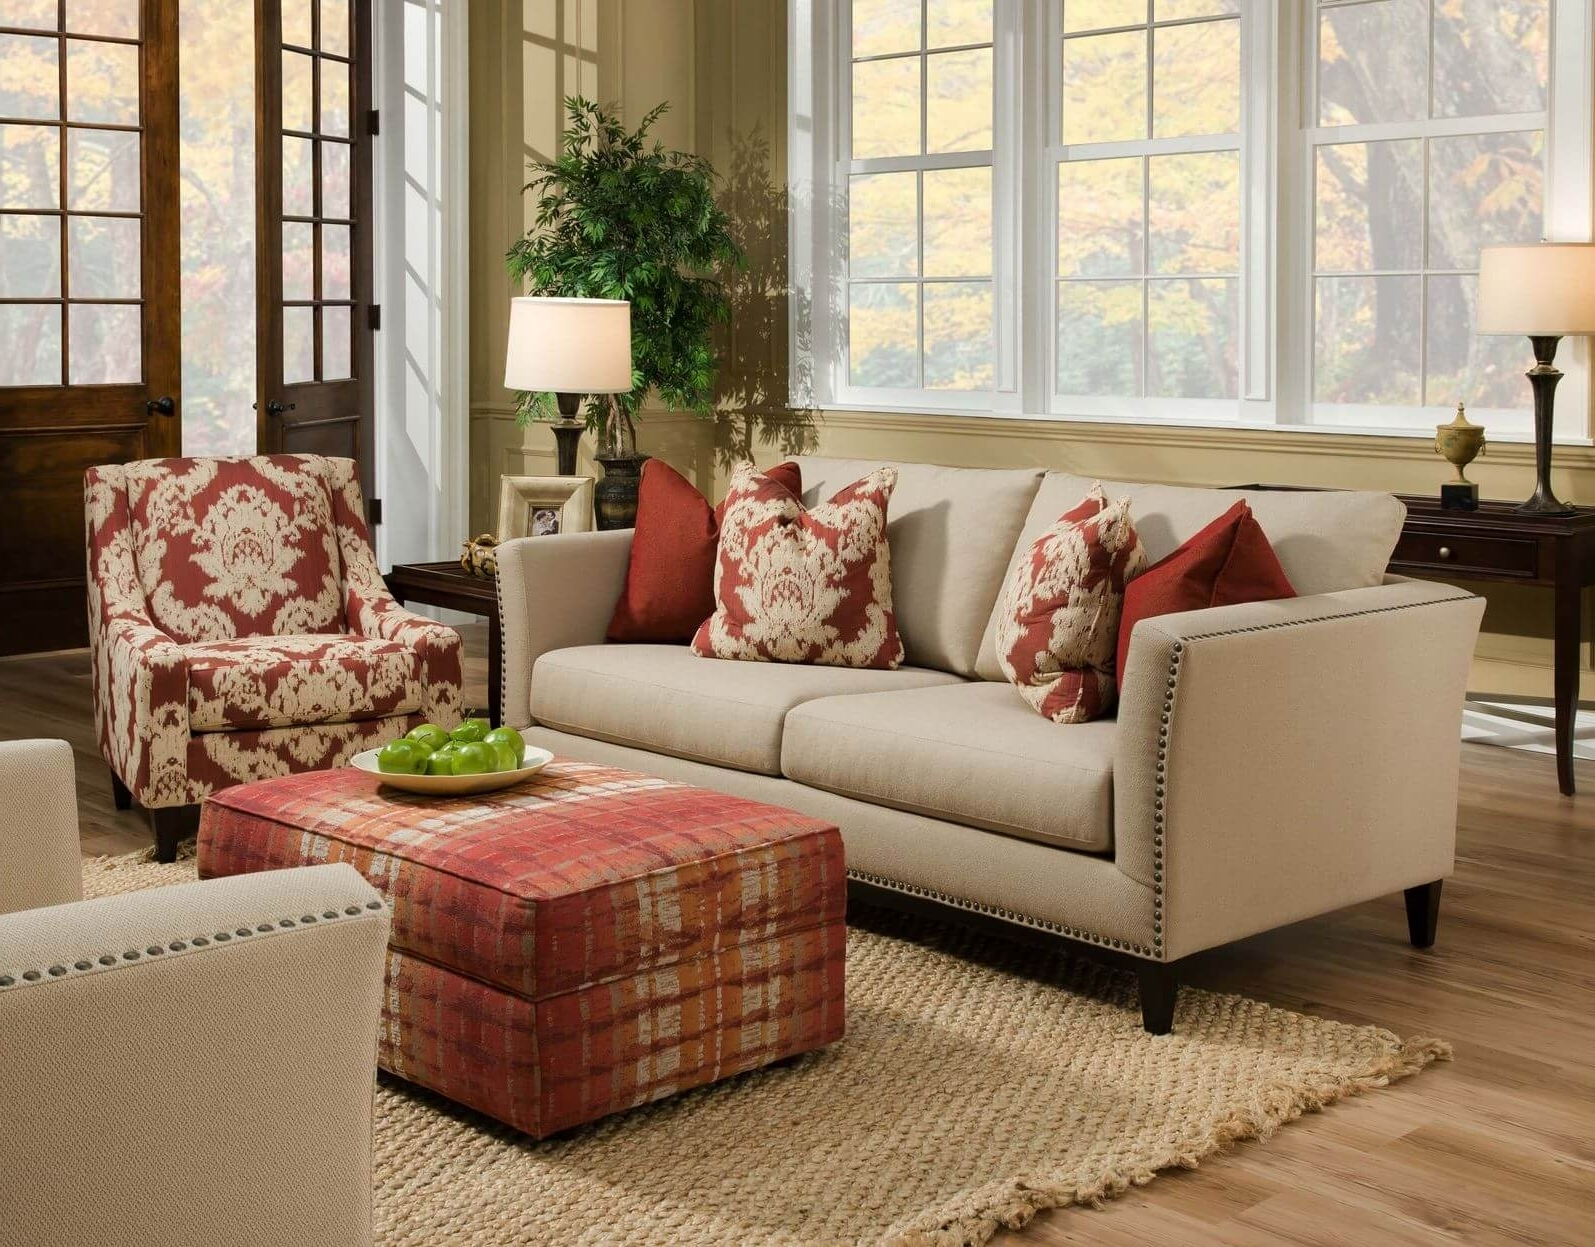 Popular Beige Sofa Decor Ideas — Radionigerialagos Pertaining To Colorful Sofas And Chairs (View 7 of 20)